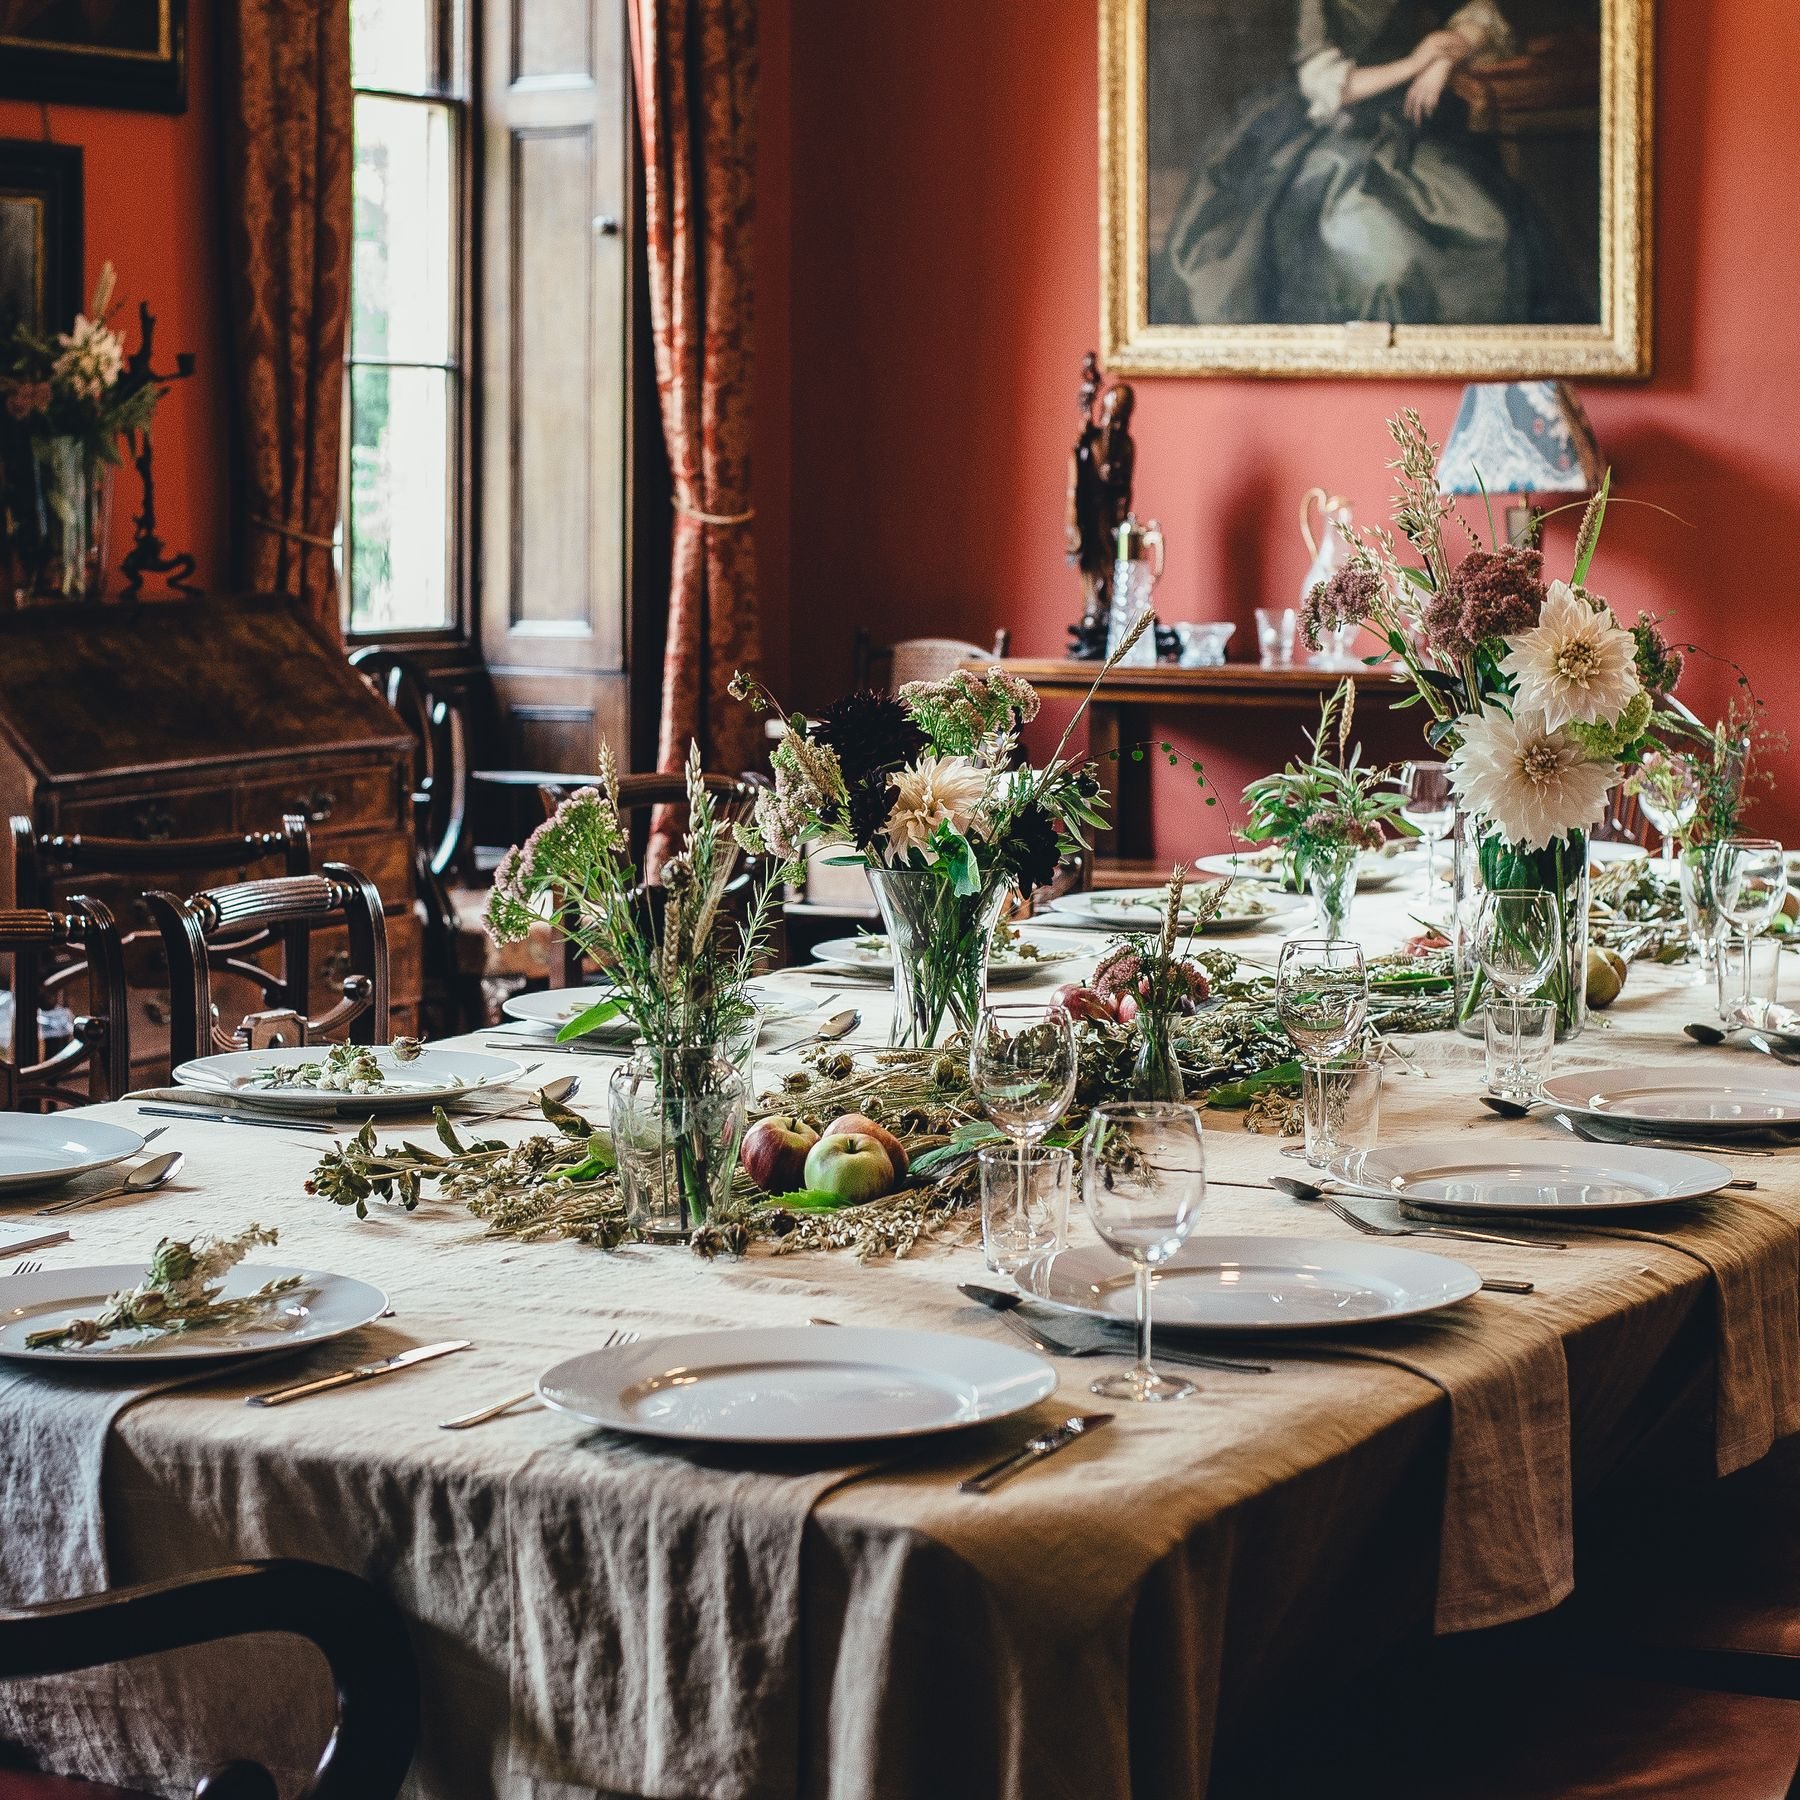 Christmas Dinner Party Ideas.How To Host The Perfect Christmas Dinner Party 2019 Tips